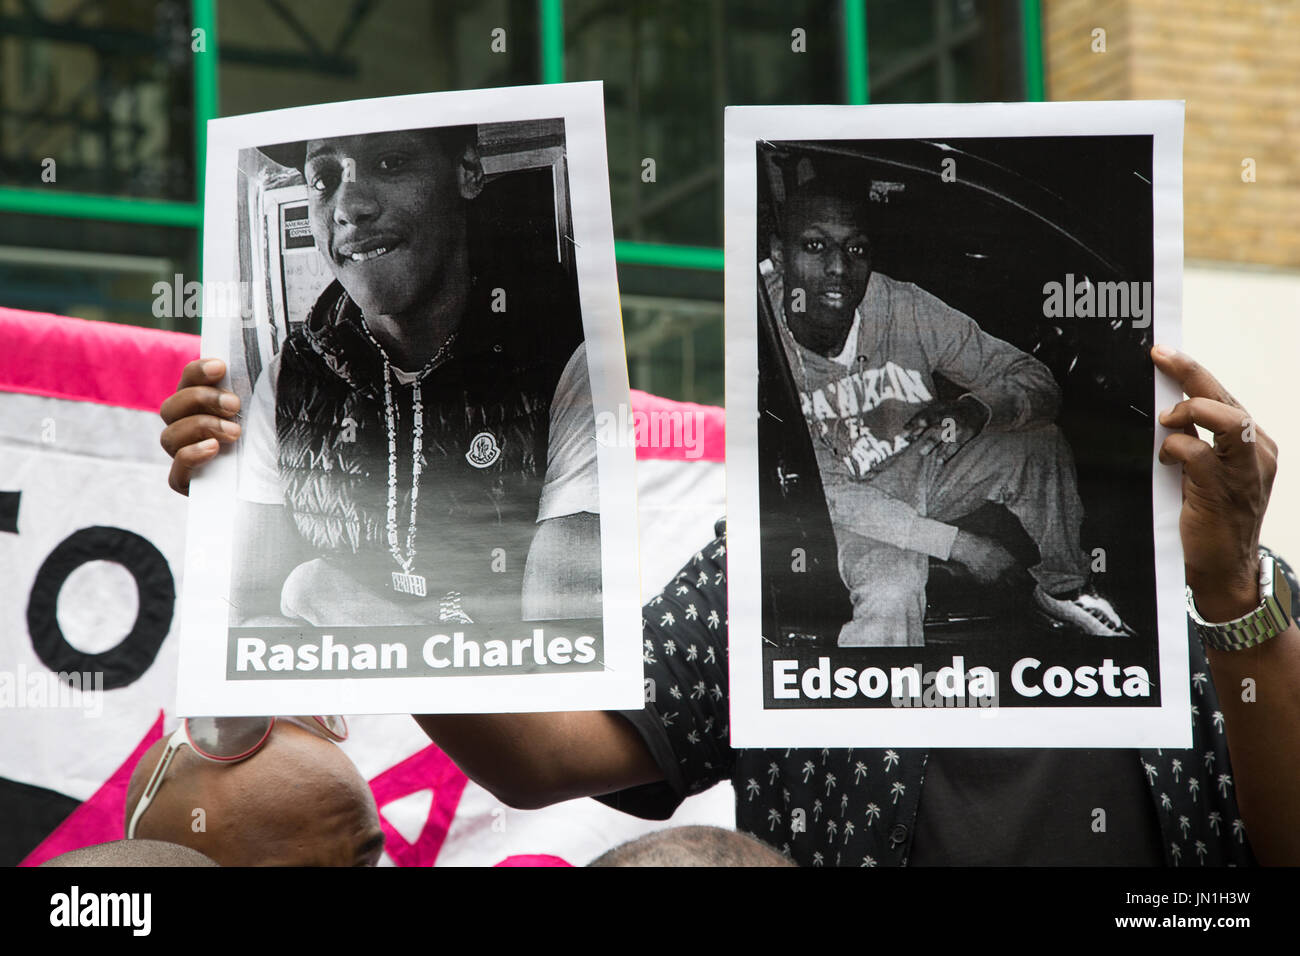 London, UK. 29th July, 2017. A protester holds up printed photographs of Edir (Edson) Da Costa (R), a 25-year-old - Stock Image